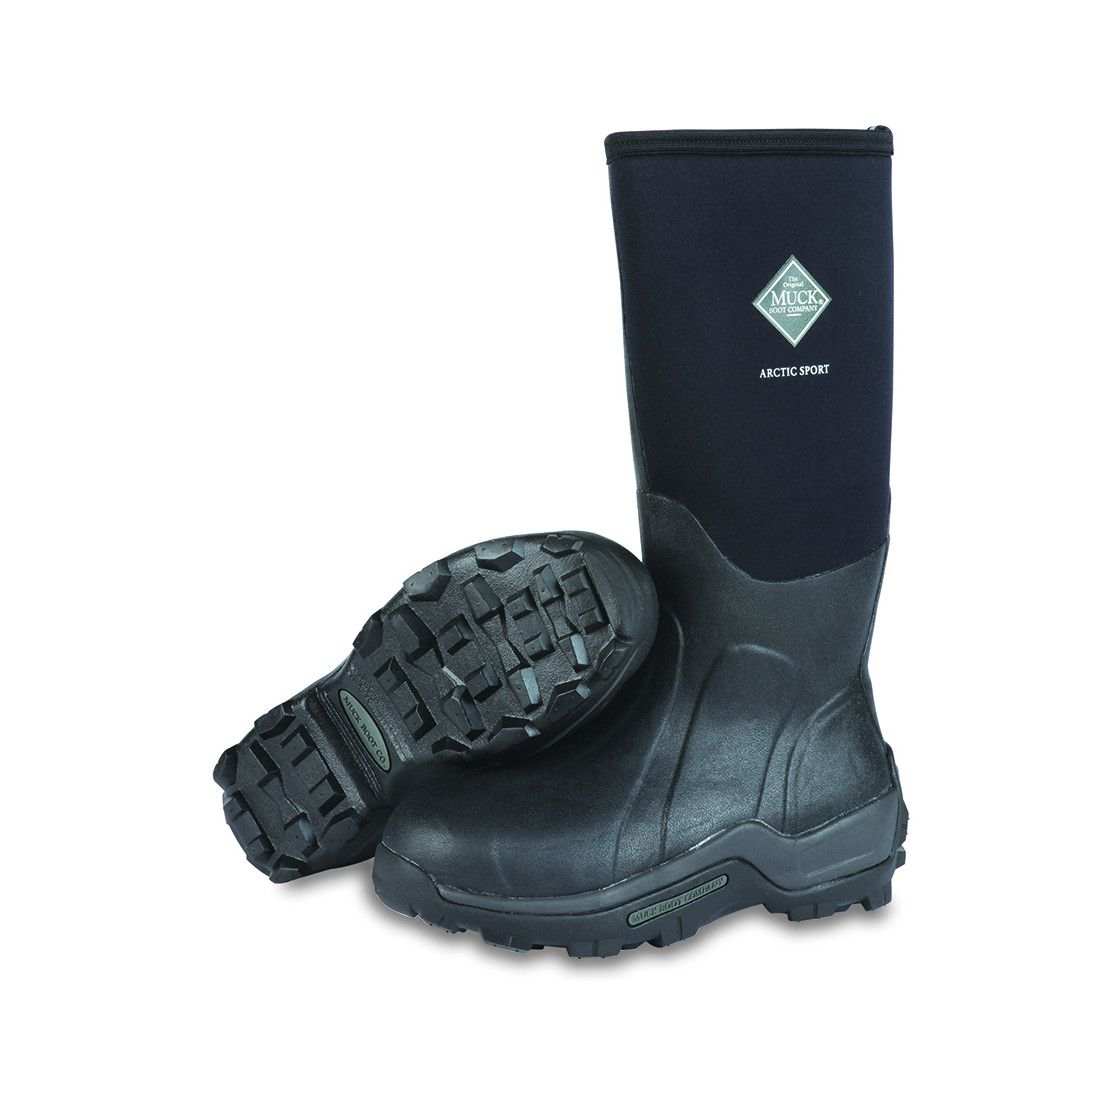 HS_muck_arctic_sport_safety_toe_muck_asp-stl